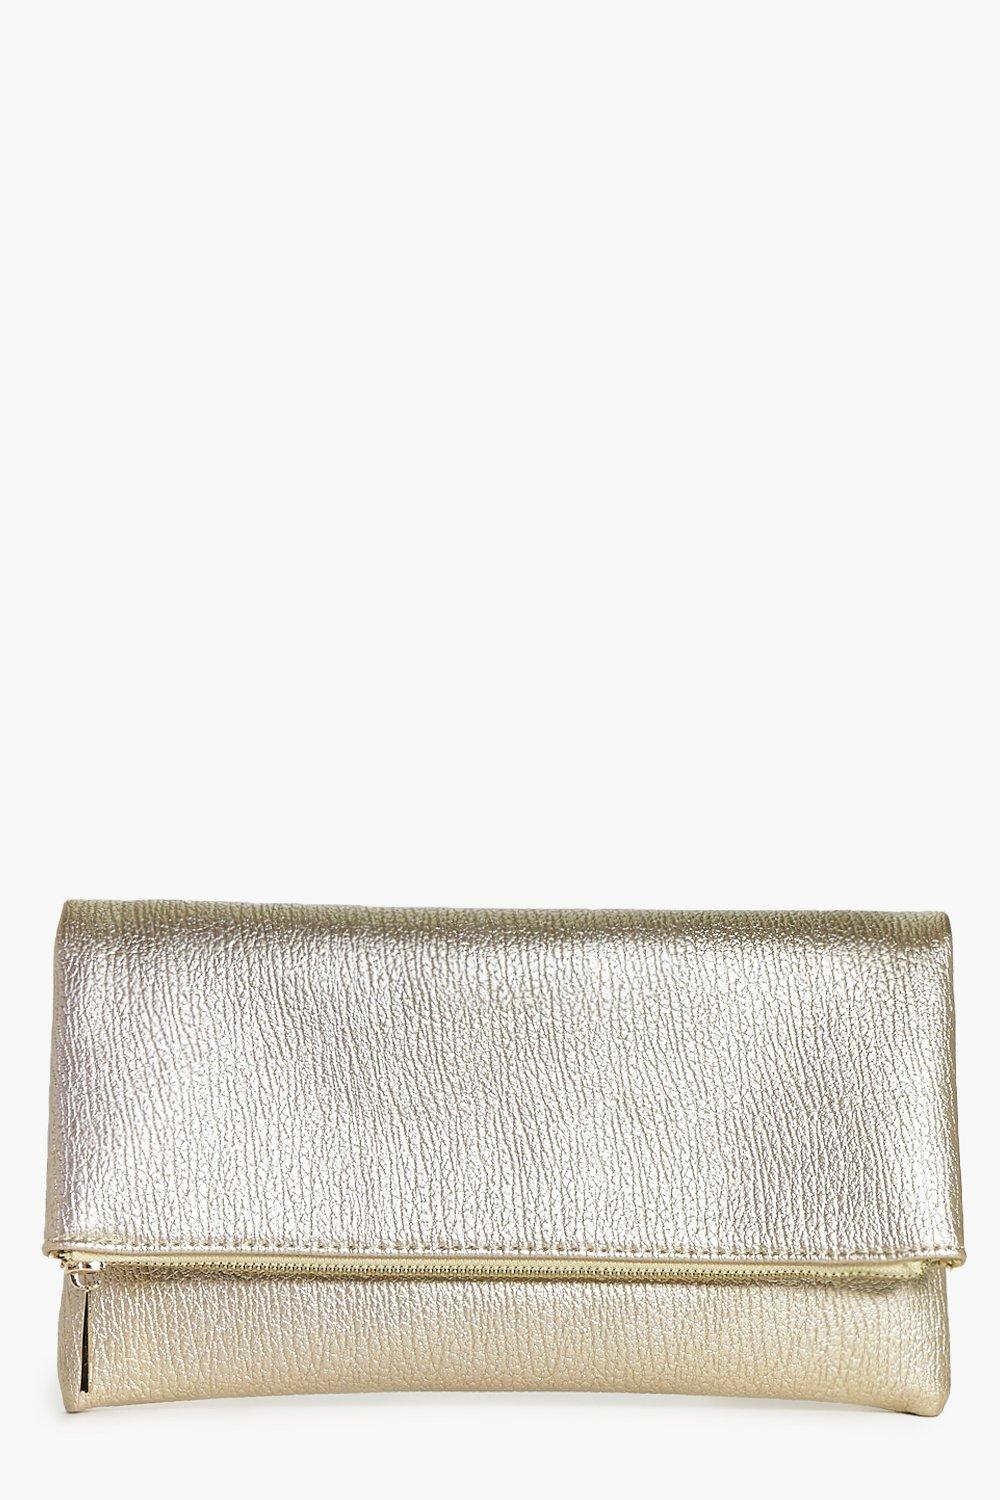 Metallic Fold Over Clutch Bag Gold - predominant colour: gold; occasions: evening, occasion; type of pattern: standard; style: clutch; length: hand carry; size: standard; material: faux leather; pattern: plain; finish: metallic; season: a/w 2016; wardrobe: event